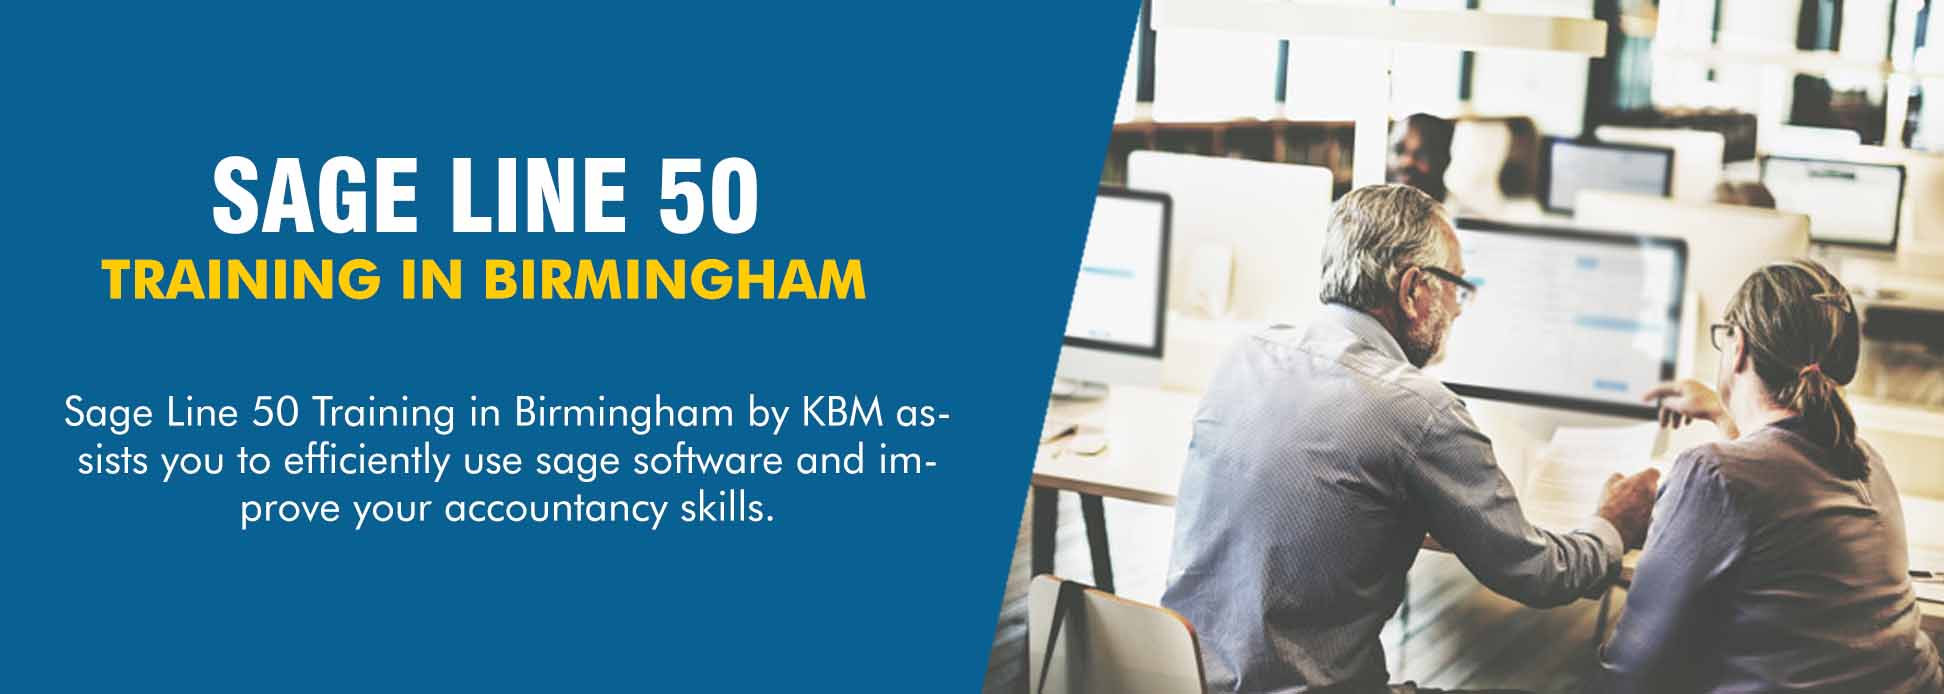 sage-line-50-training-in-birmingham